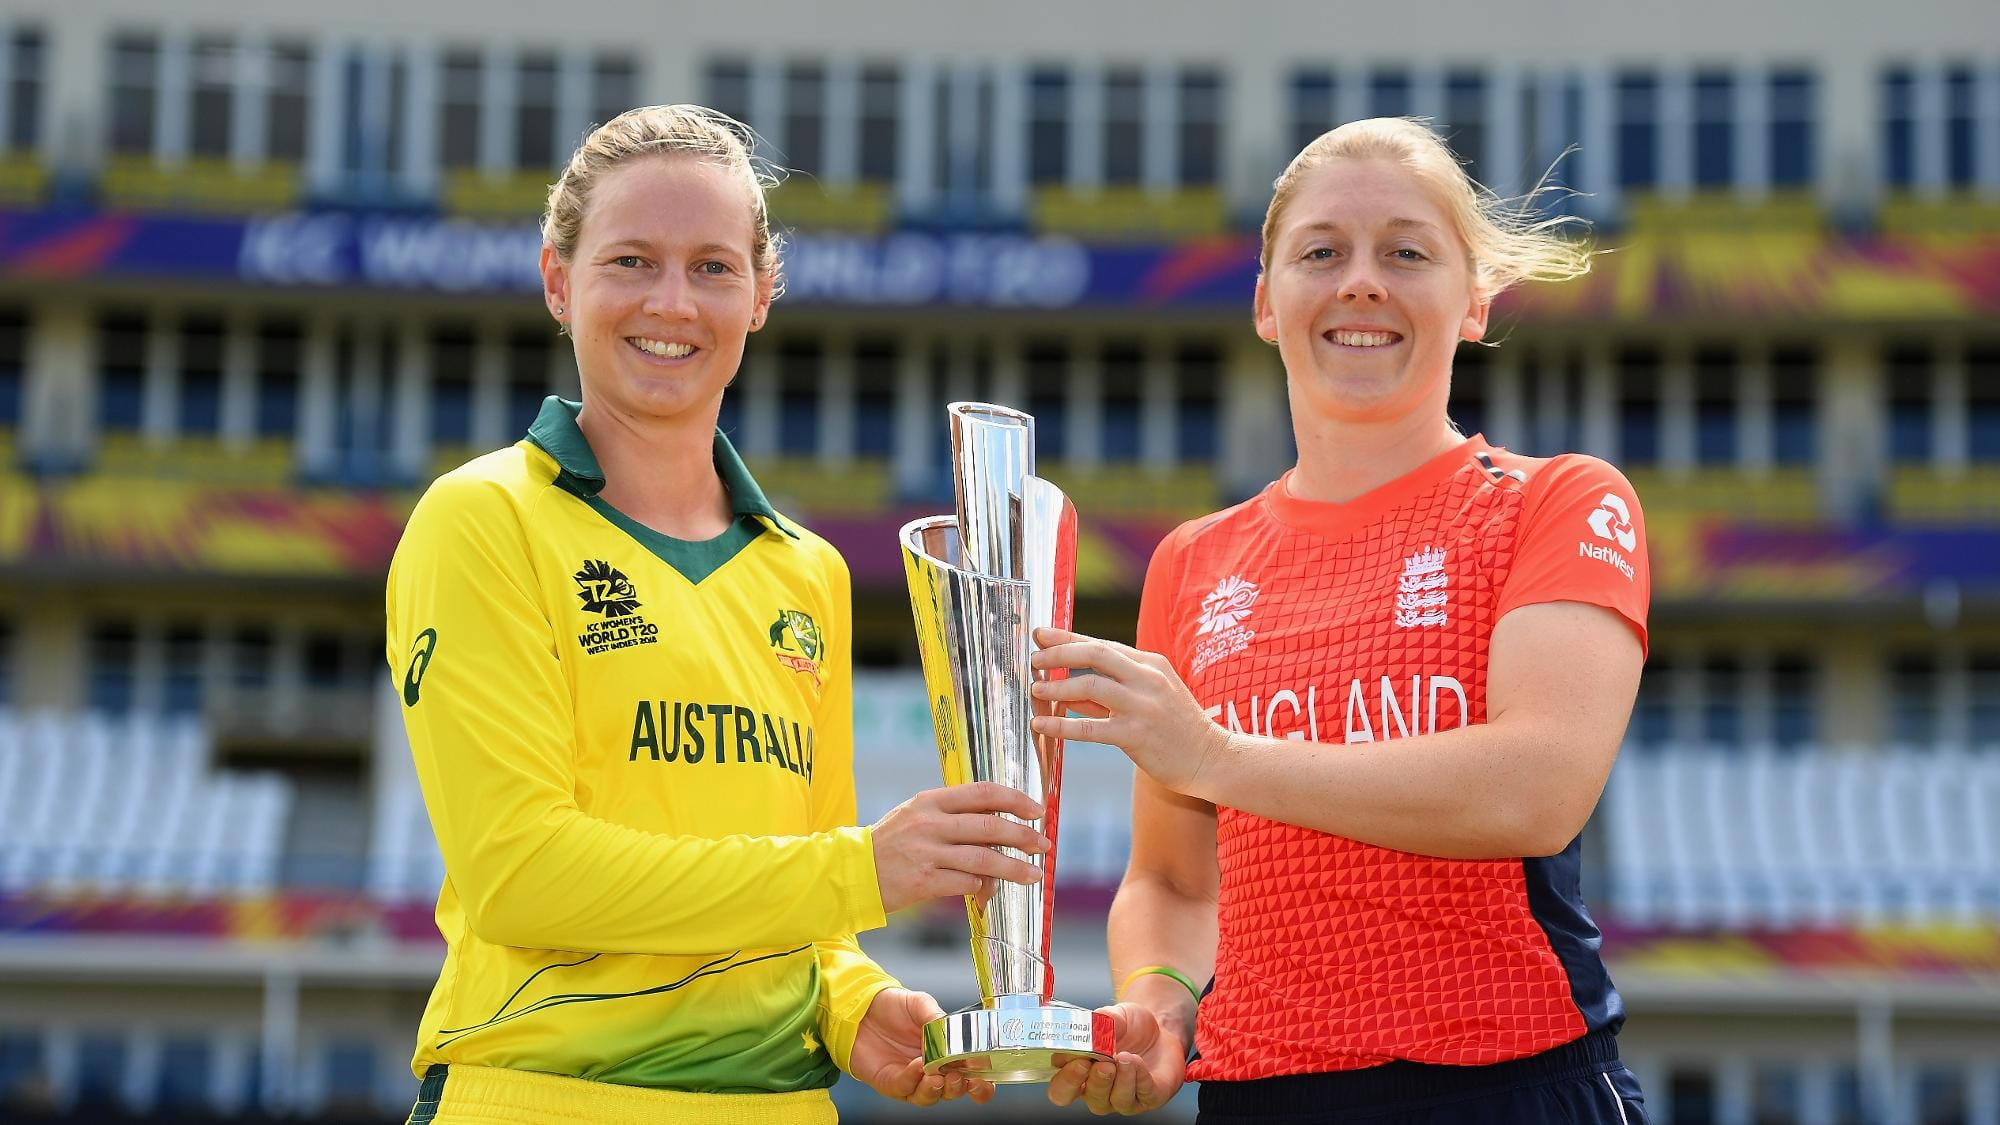 Women's World T20 final: Old rivals Australia meet England with eye on title